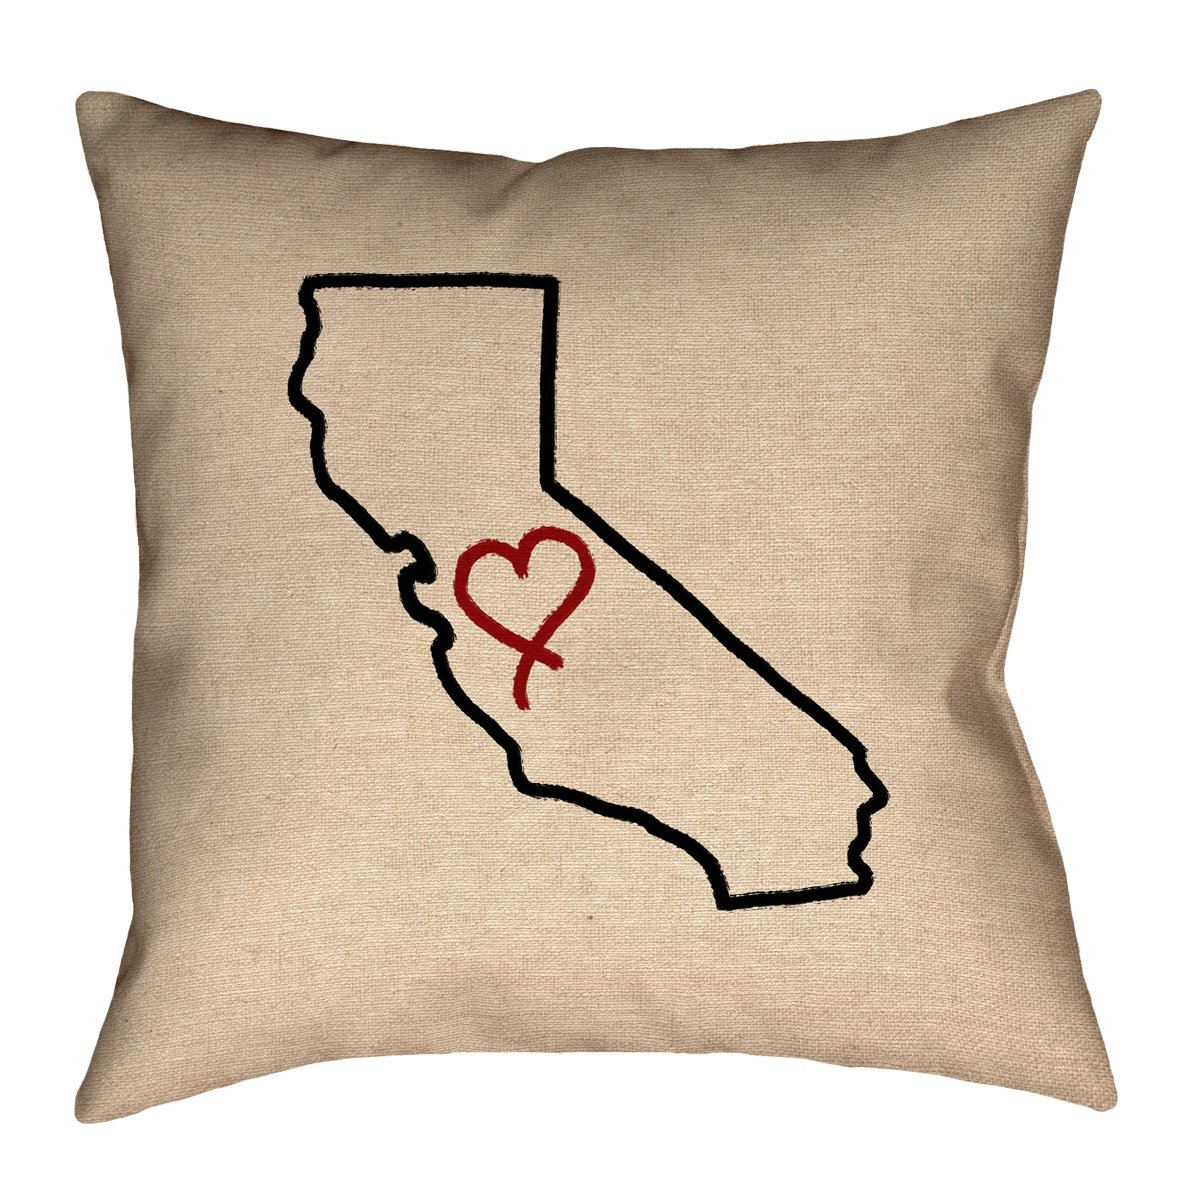 ArtVerse Katelyn Smith 36' x 36' Floor Double Sided Print with Concealed Zipper & Insert California Love Pillow